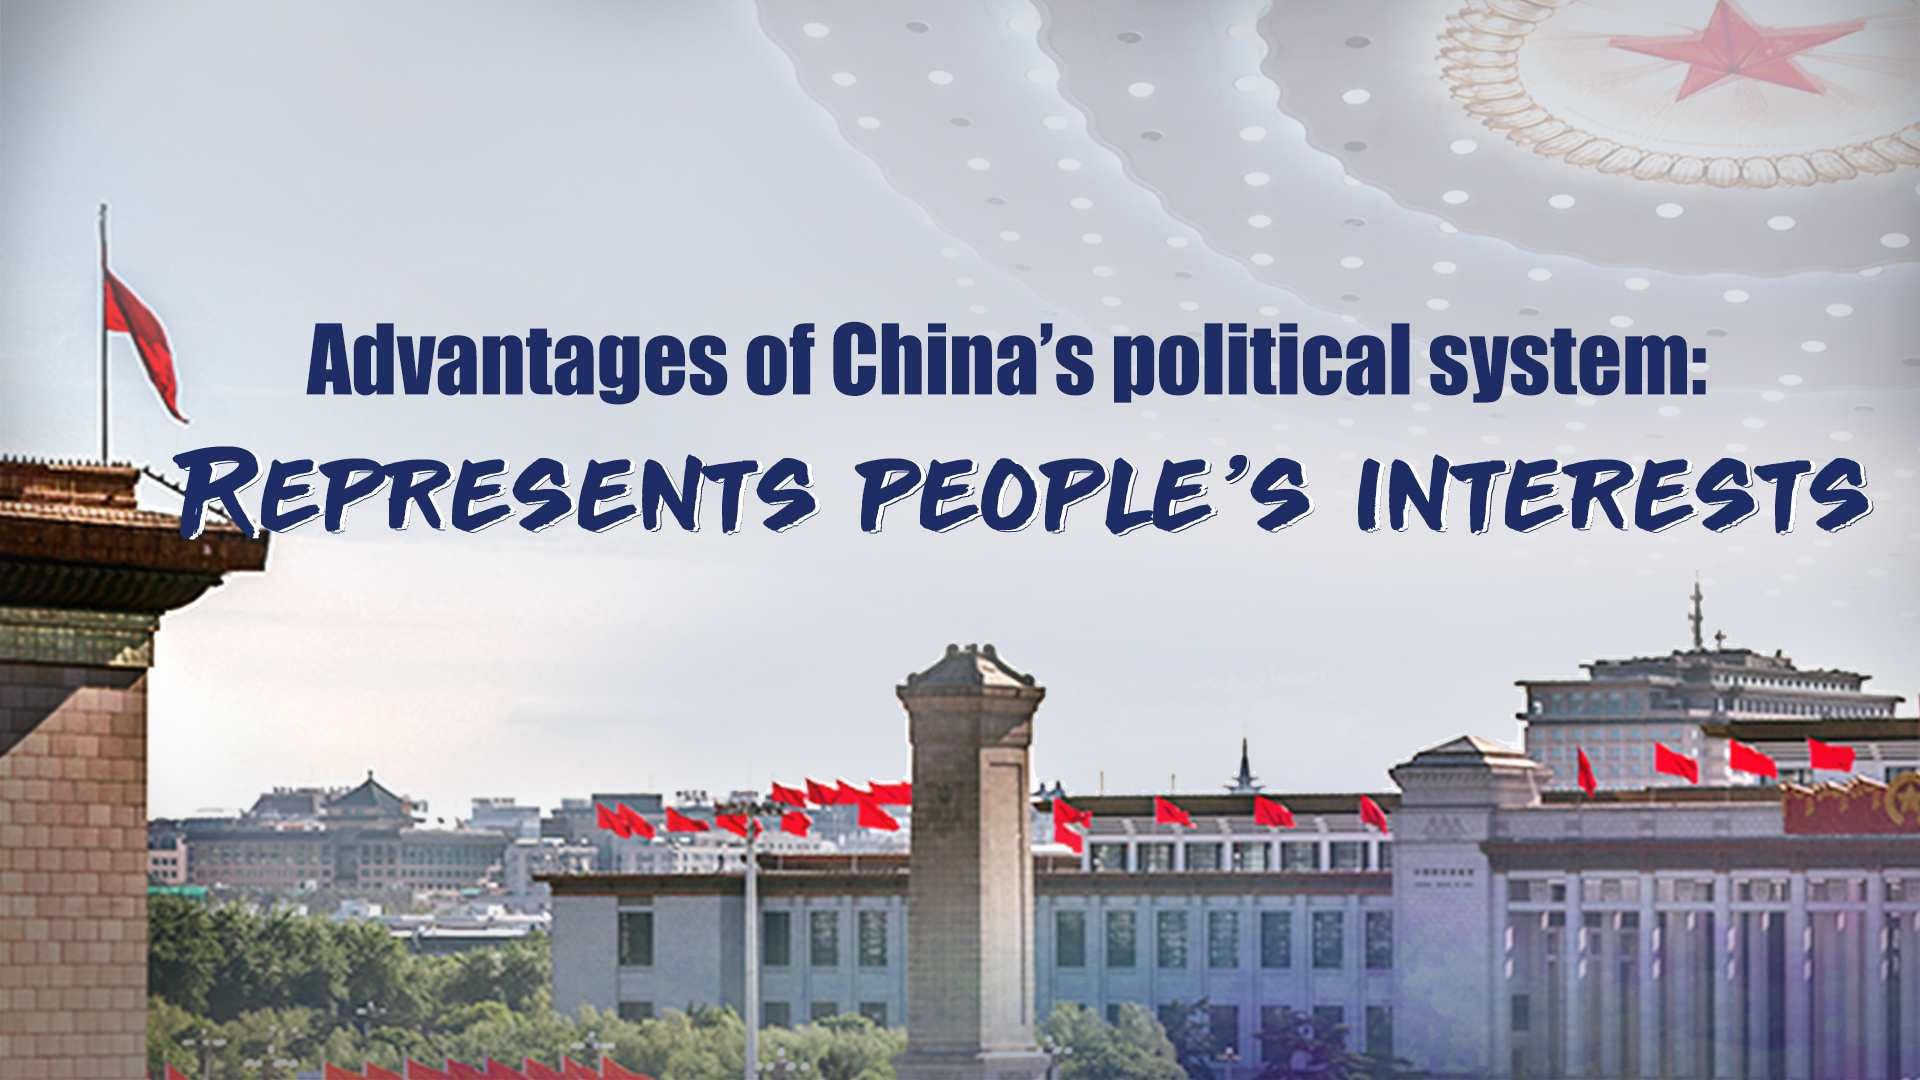 Advantages of China's political system: Represents people's interests